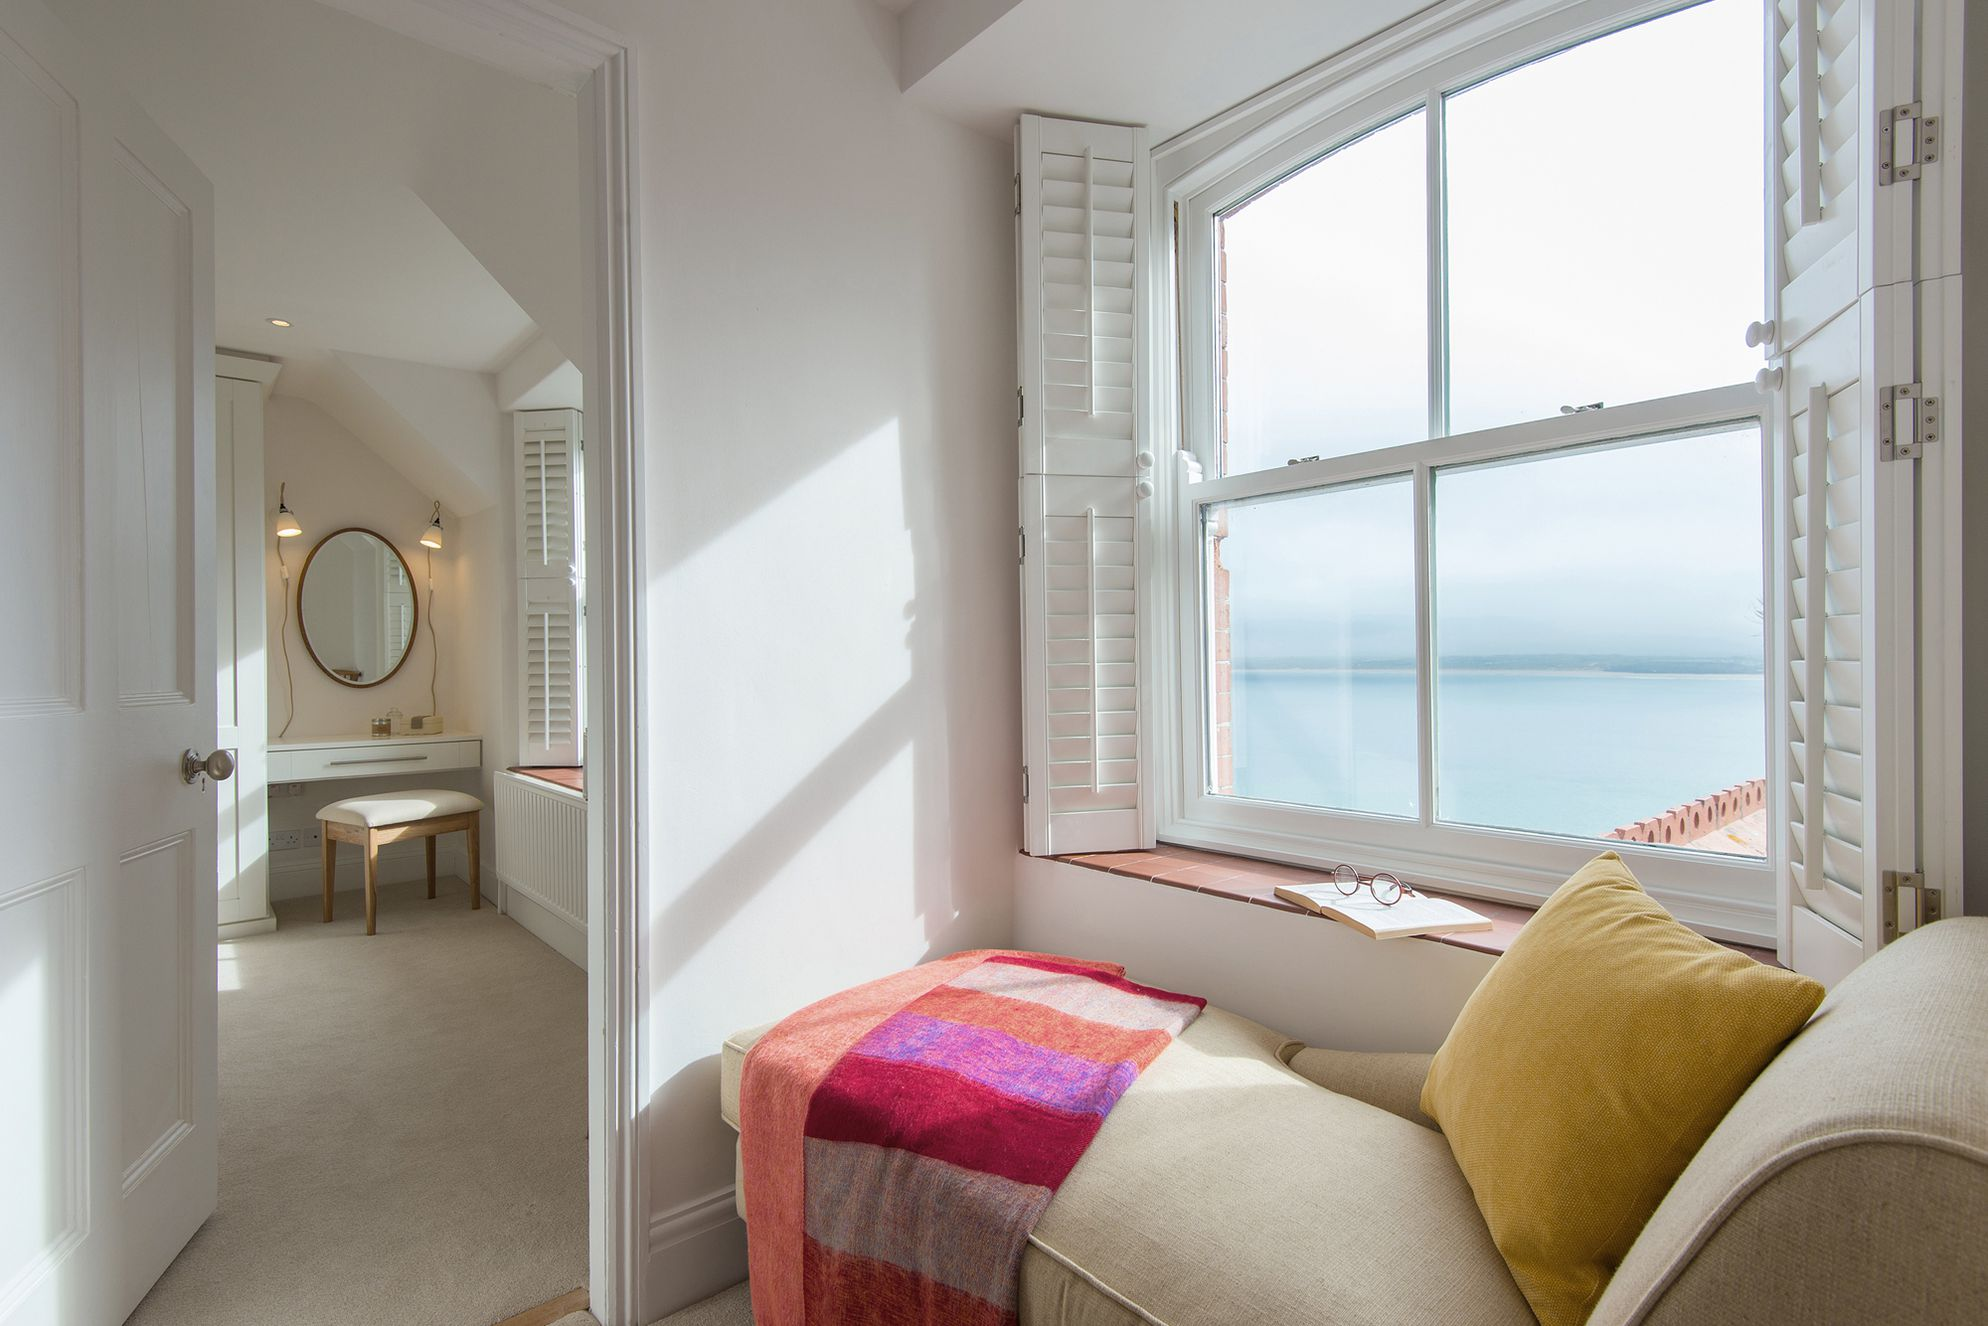 Window seat over looking the sea with a door leading to a dressing room